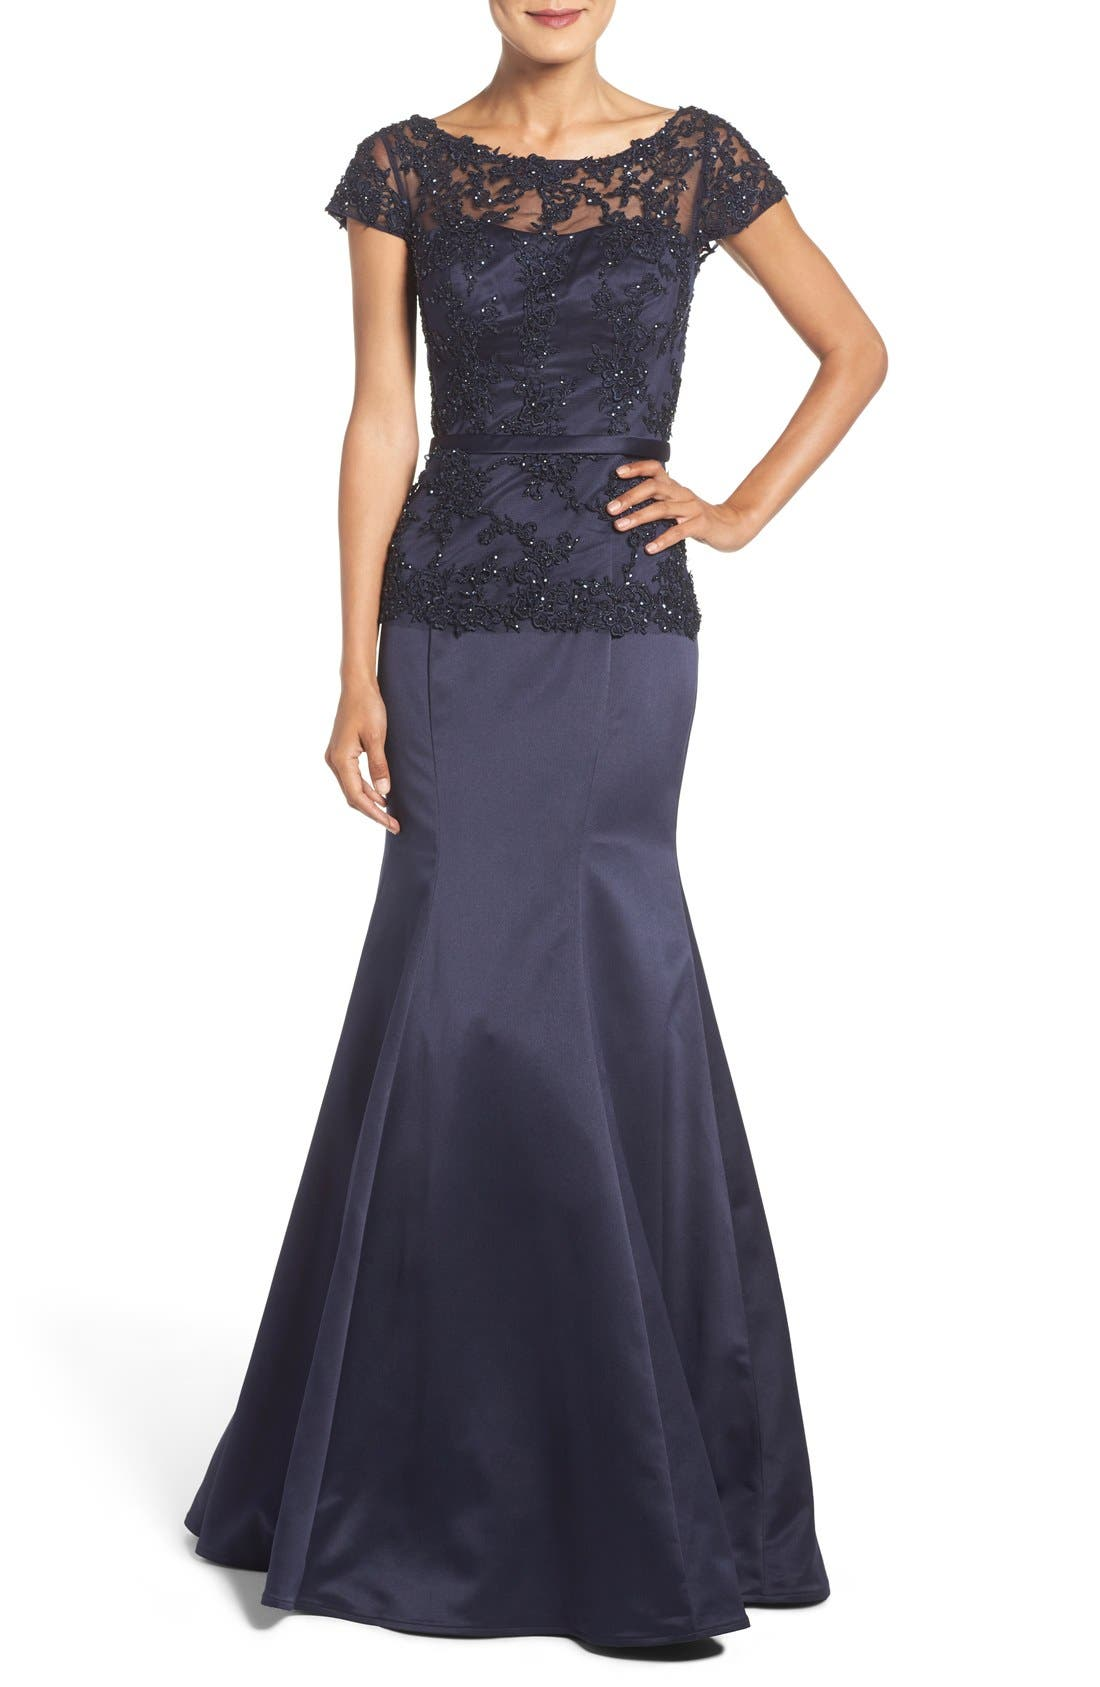 Alternate Image 1 Selected - La Femme Embroidered Beaded Lace & Satin Mermaid Gown